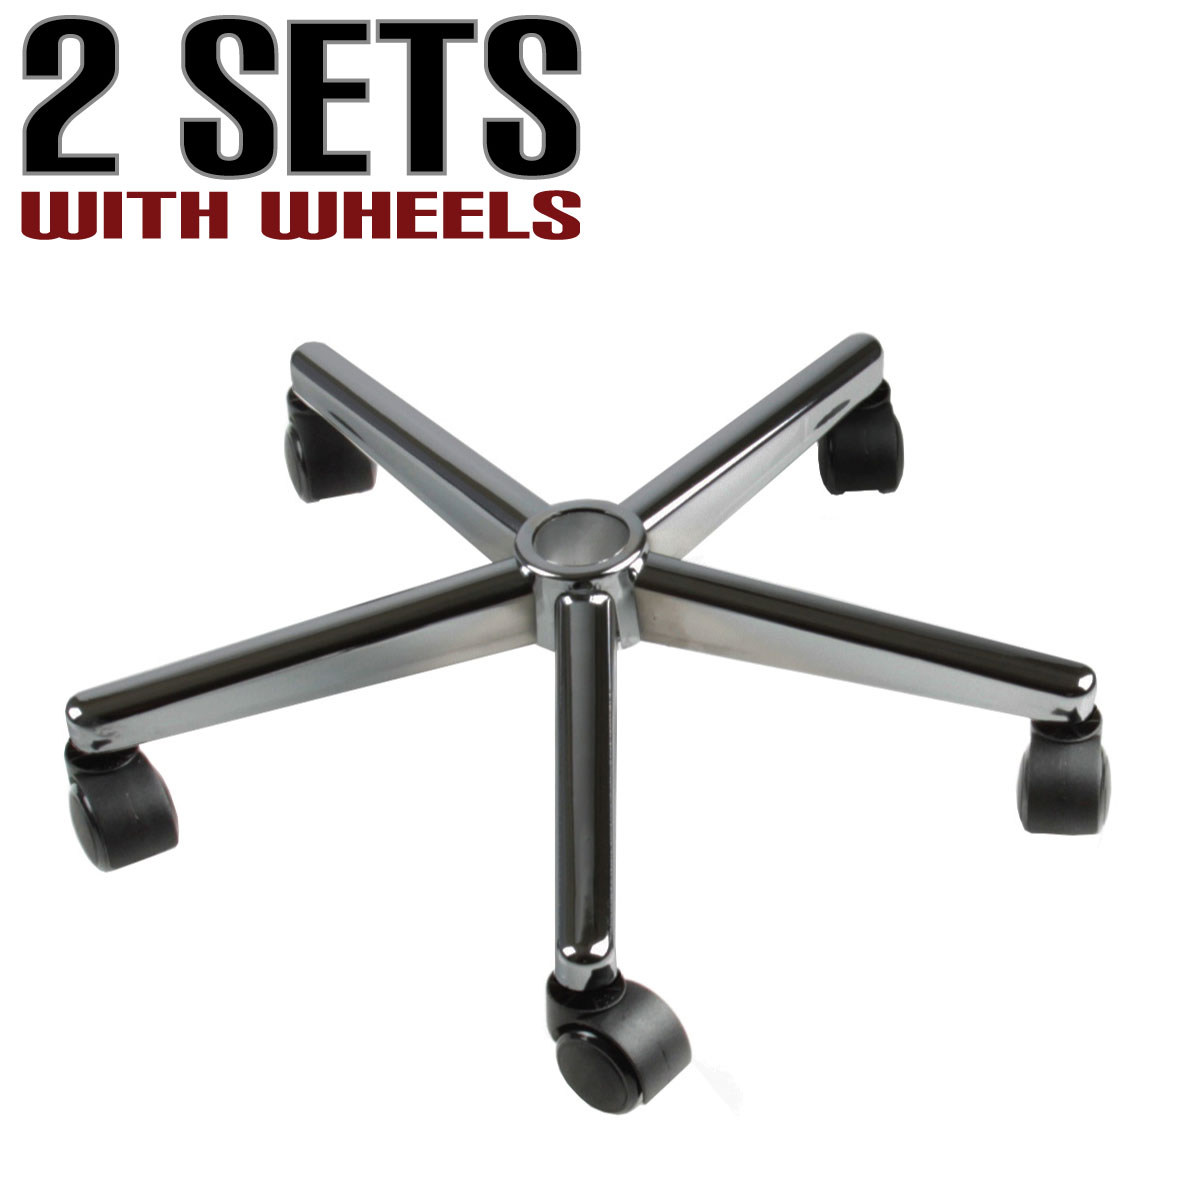 Chair Replacement Star Base 5 Black Rubber Wheel Casters Set 2 Furniture Office